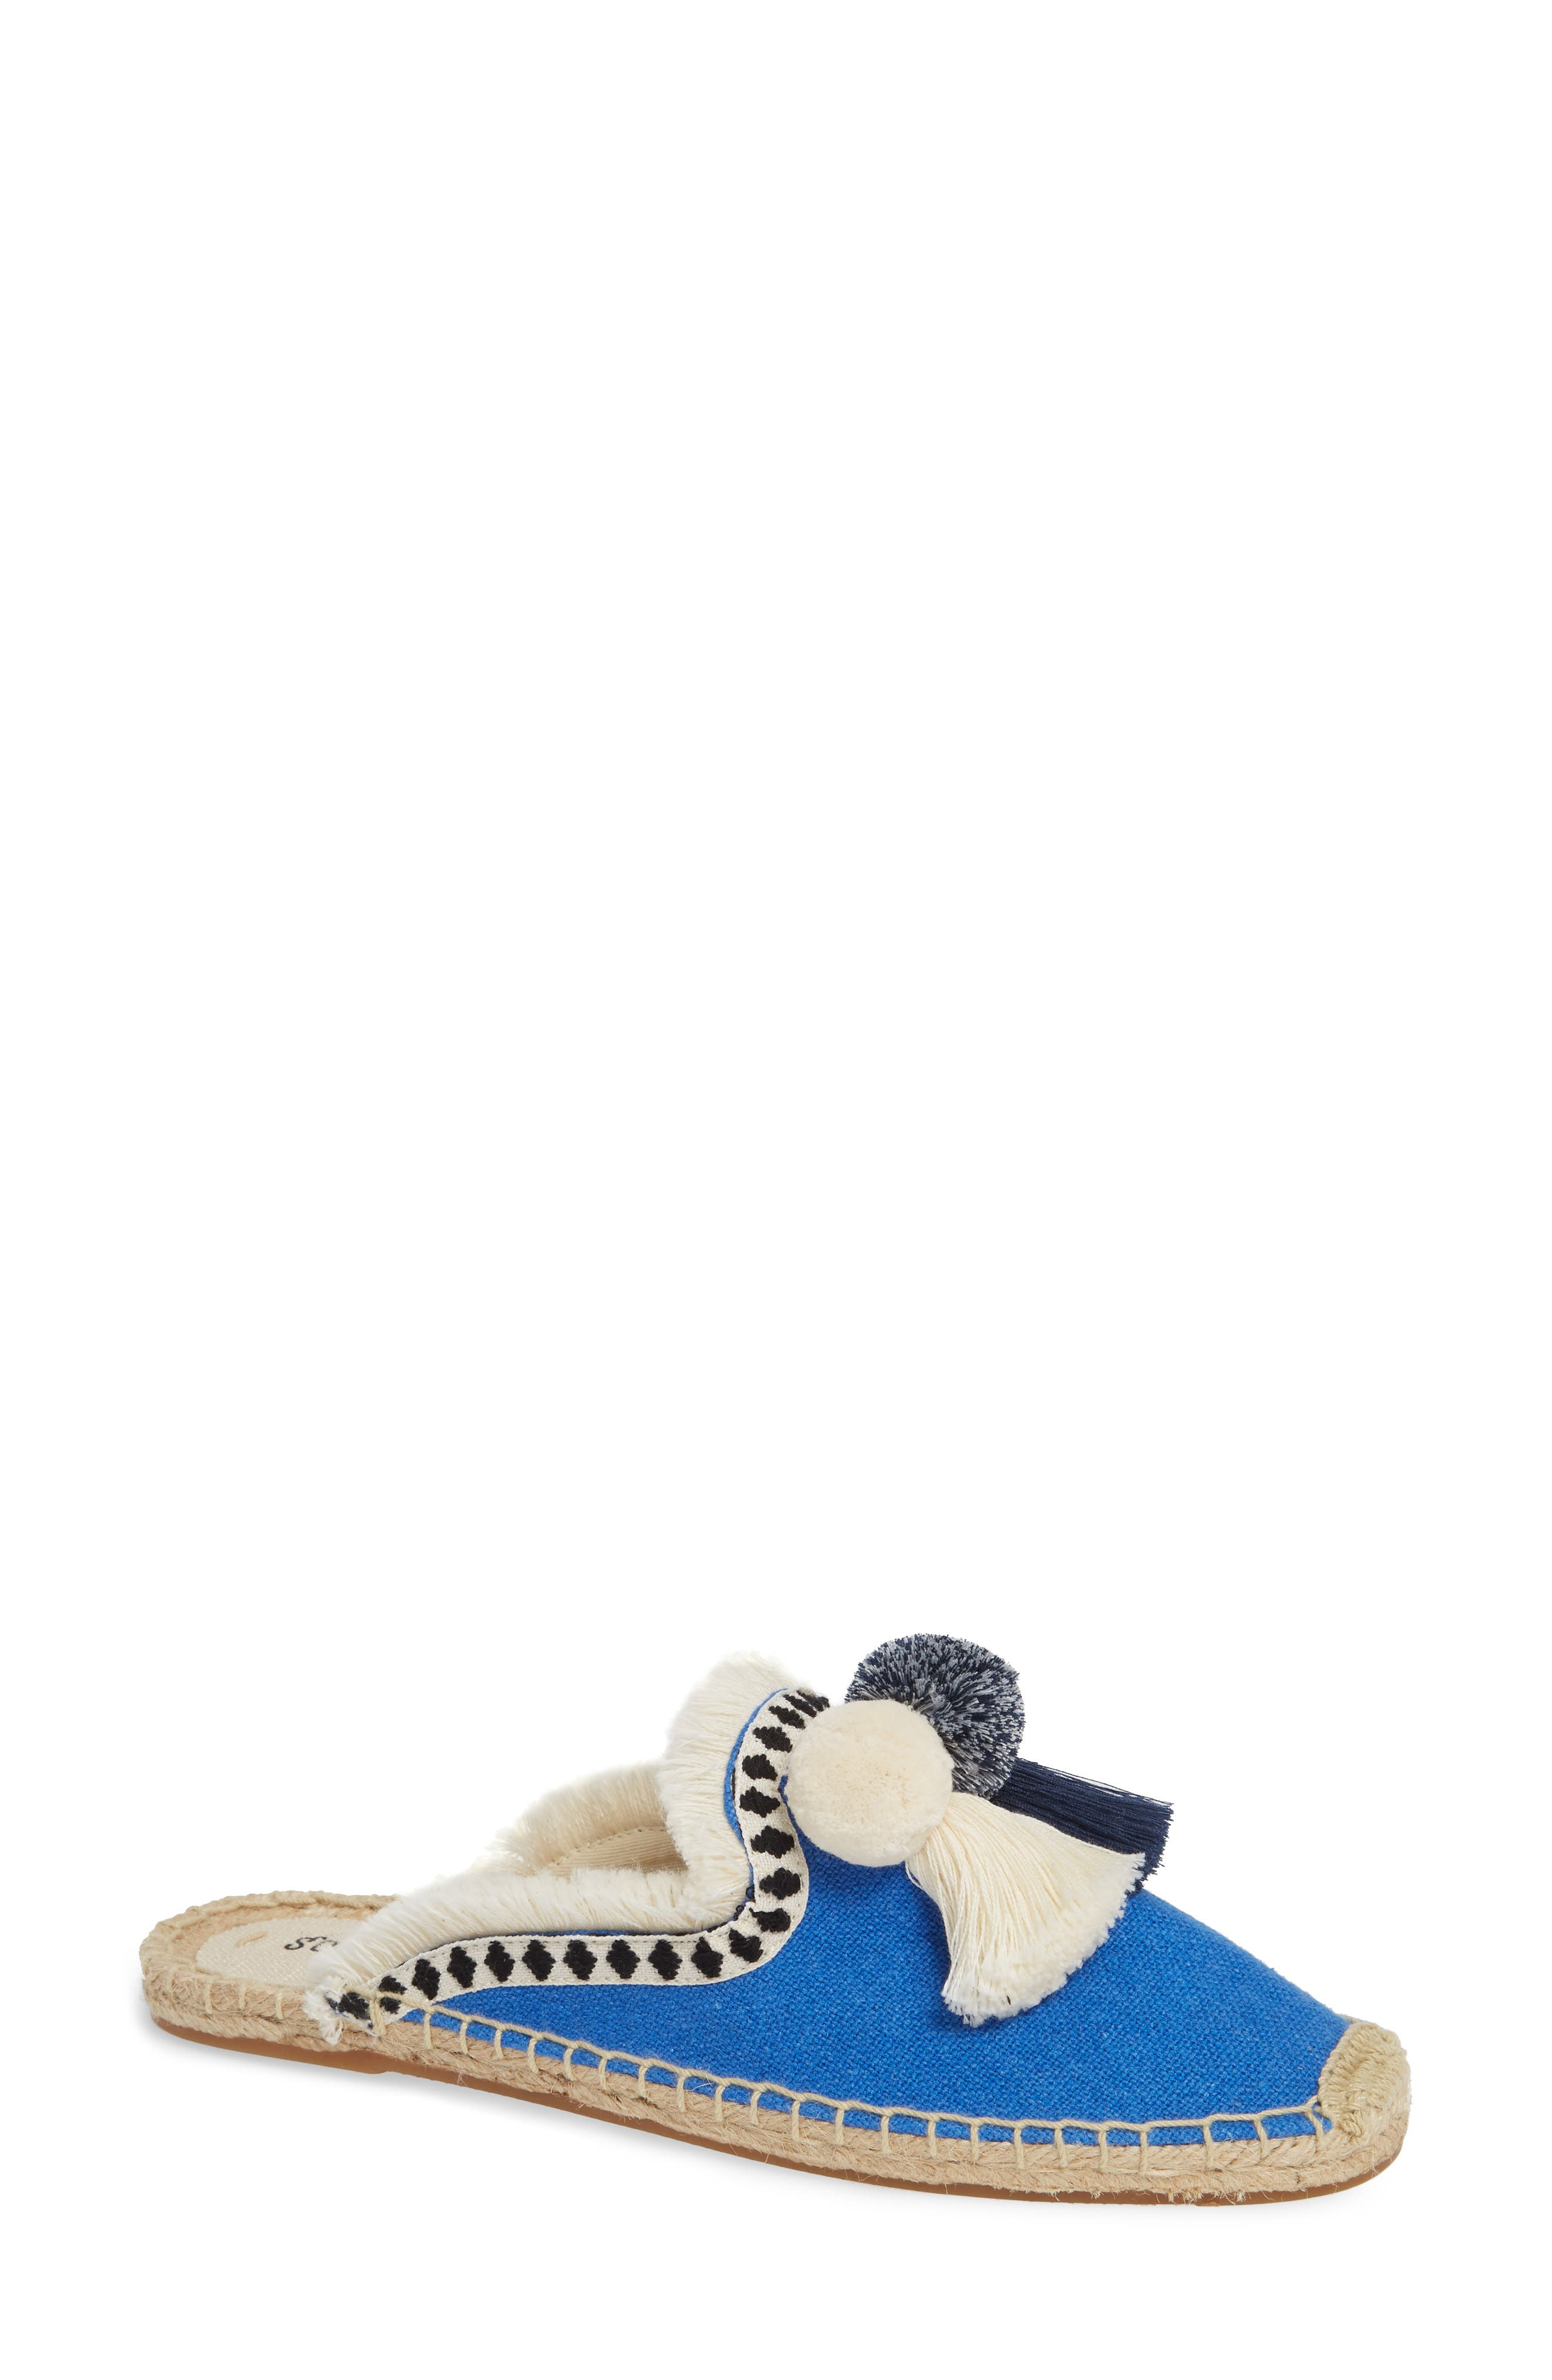 Pompom Espadrille Mule,                             Main thumbnail 1, color,                             MARLIN BLUE FABRIC